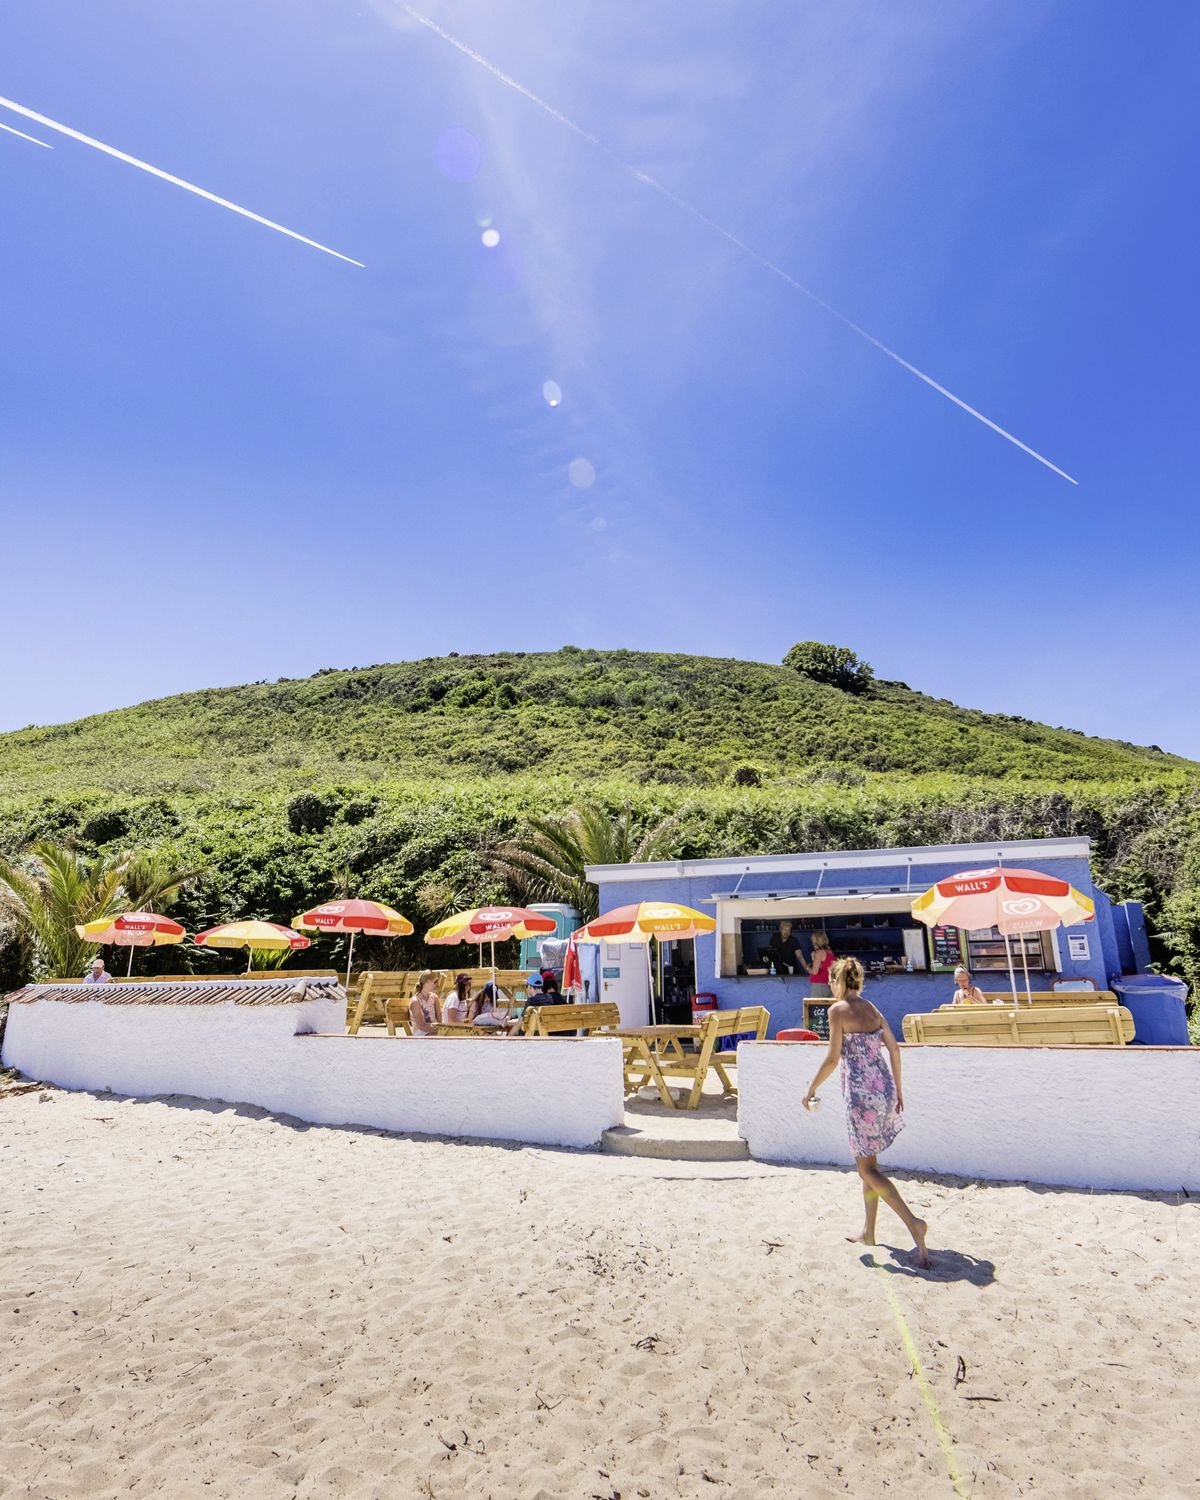 Shell Beach Cafe has been named one of the best beach cafes in Britain. (Picture by Ben Fiore)